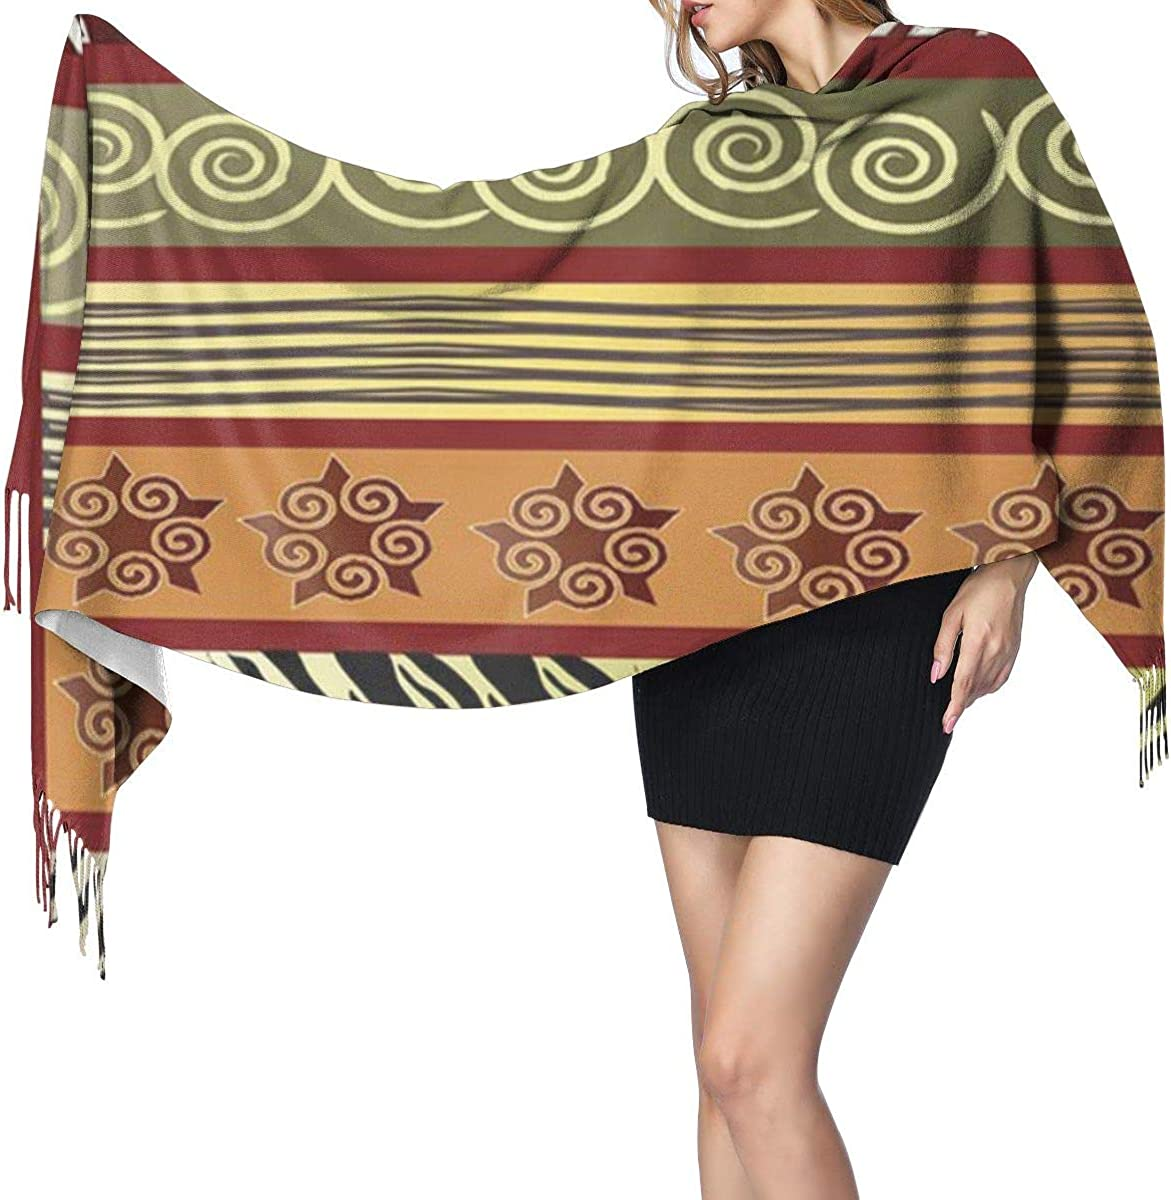 Fashion Lady Shawls,Comfortable Warm Winter Scarfs Soft Cashmere Scarf For Women Batik Green Ethnic Of African In Earth Tones Red